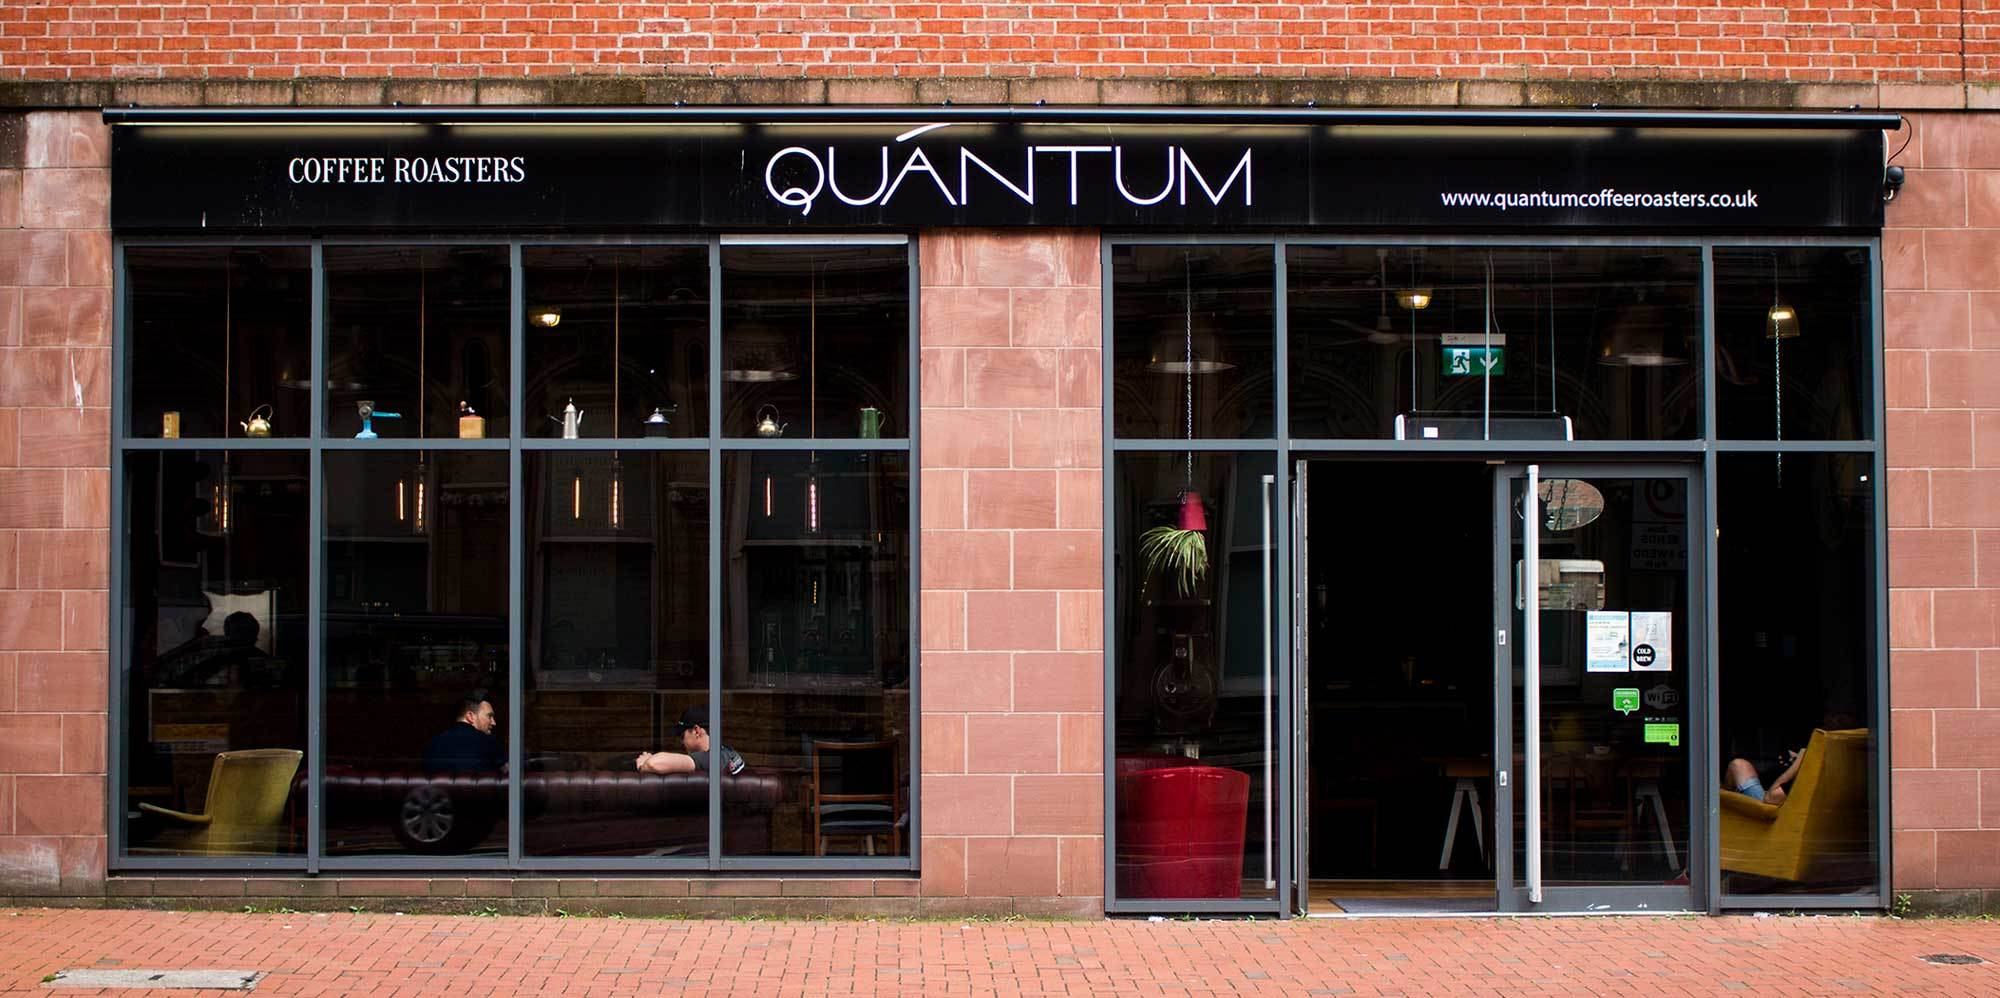 Old Quantum coffee roasters store front signage